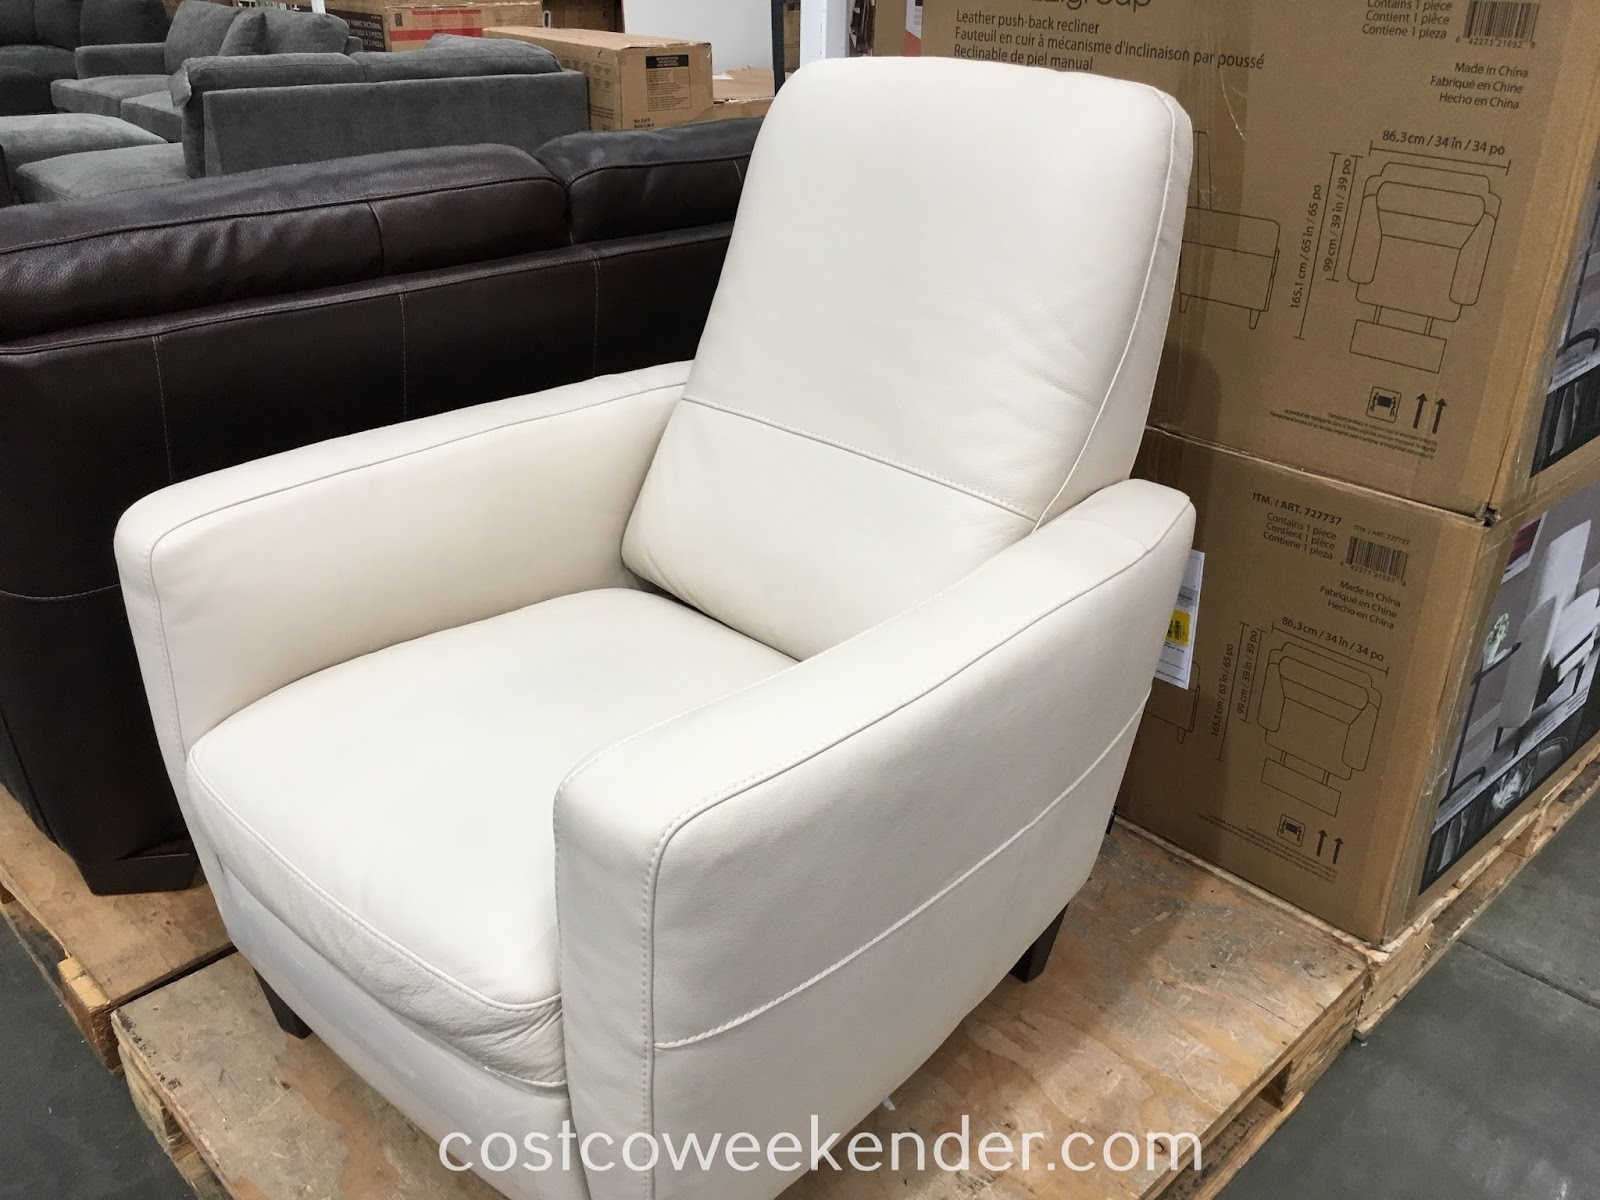 Natuzzi Group Leather Push Back Recliner Chair Costco